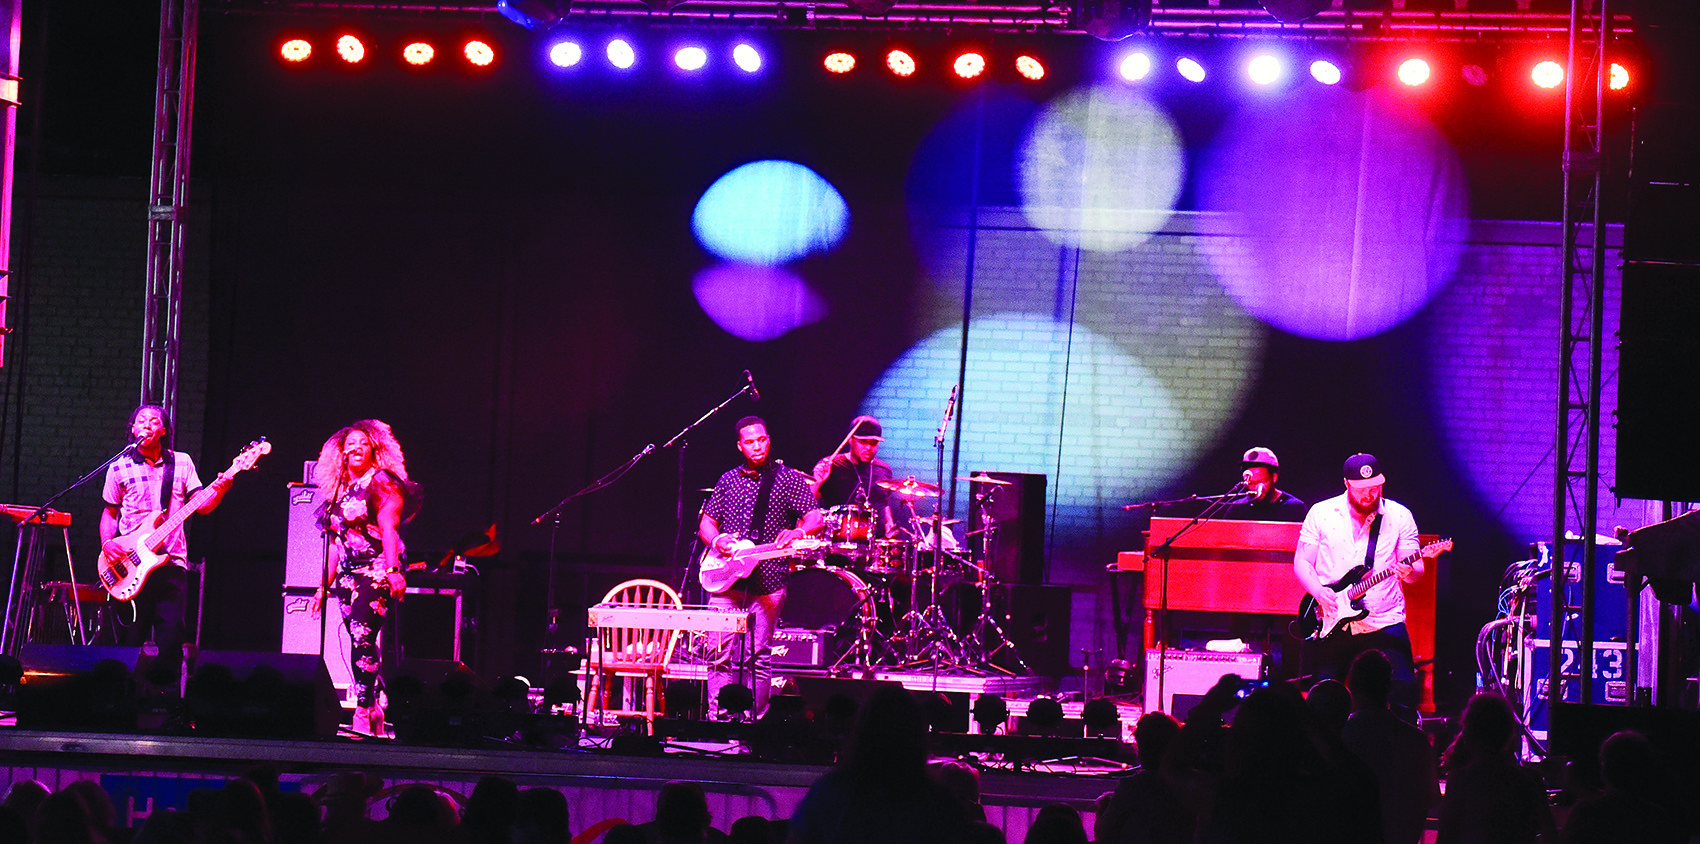 Robert Randolph and the Family Band was the headlining act at this year's Foothills Festival.